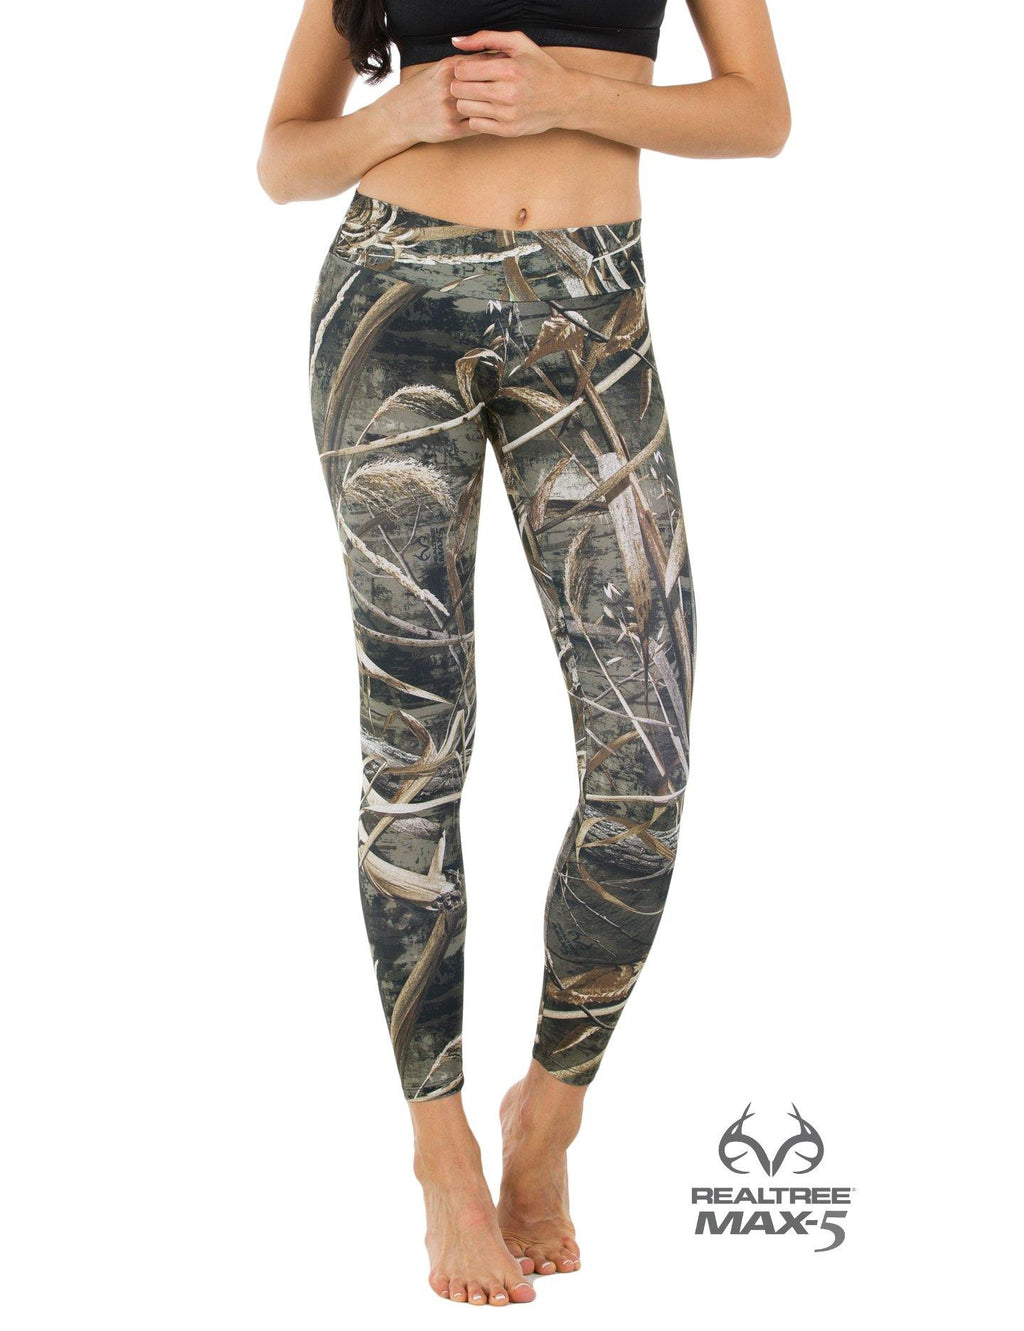 Apsara Leggings Low Waist Full Length, Realtree Max-5